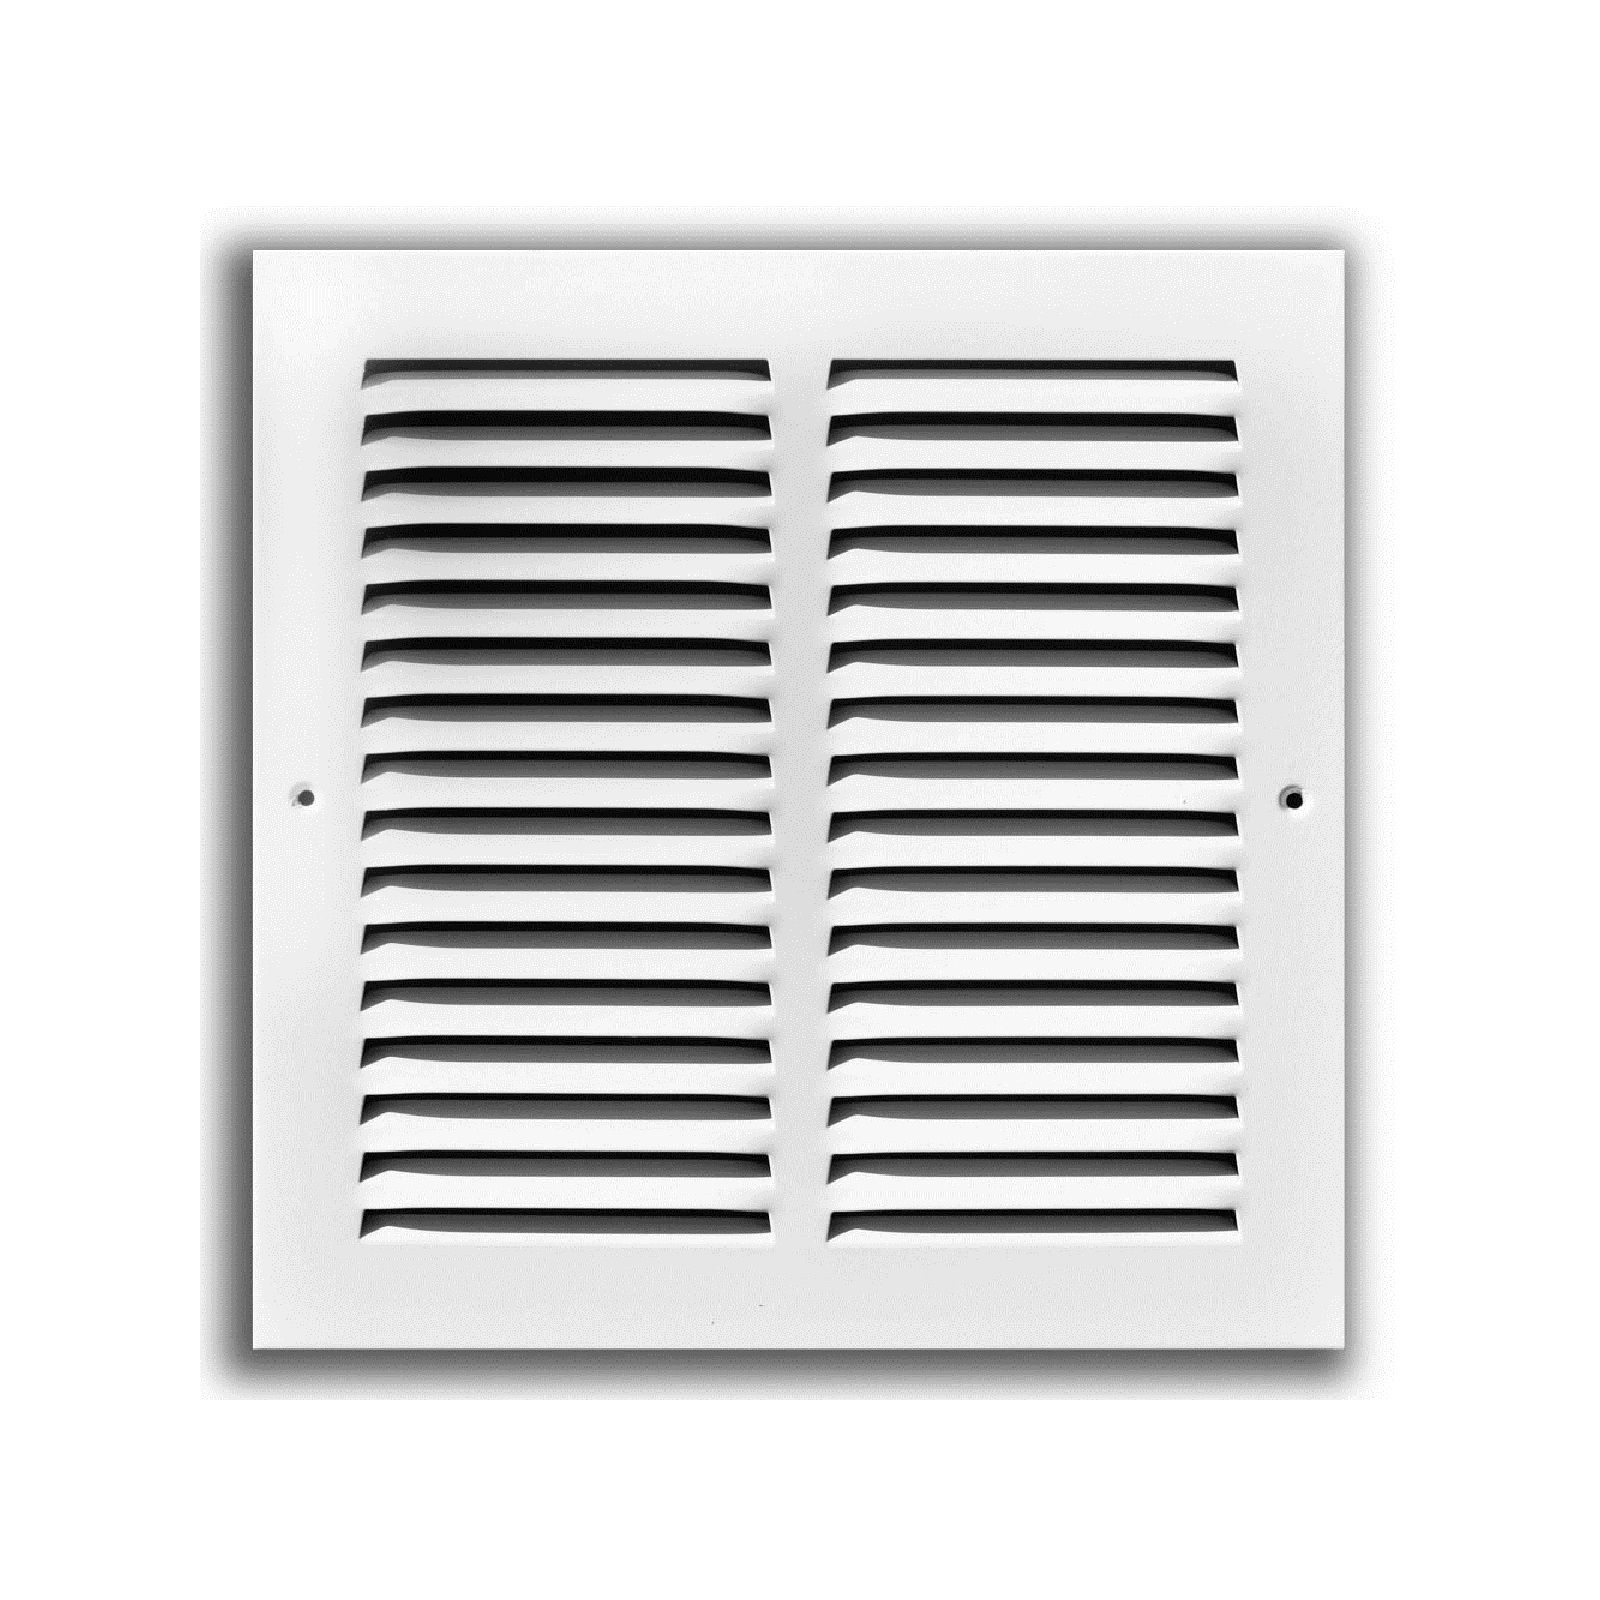 "TRUaire 170 36X08 - Steel Return Air Grille - 1/2"" Spaced Fin, White, 36"" X 08"""